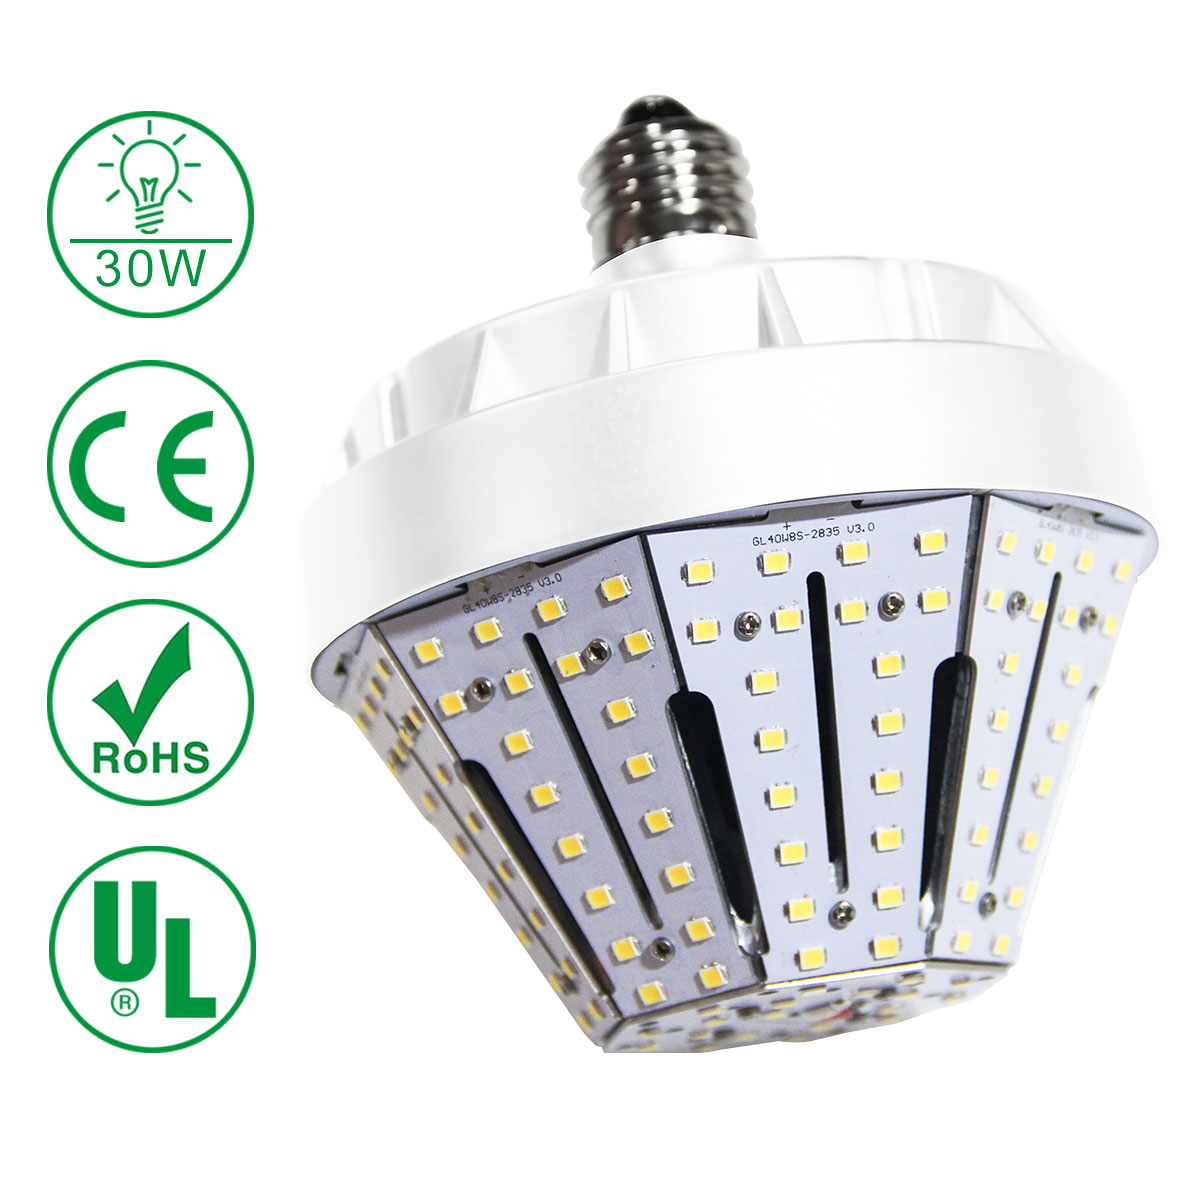 kawell 30w led corn light e26 4500lm 3200k warm white replacement